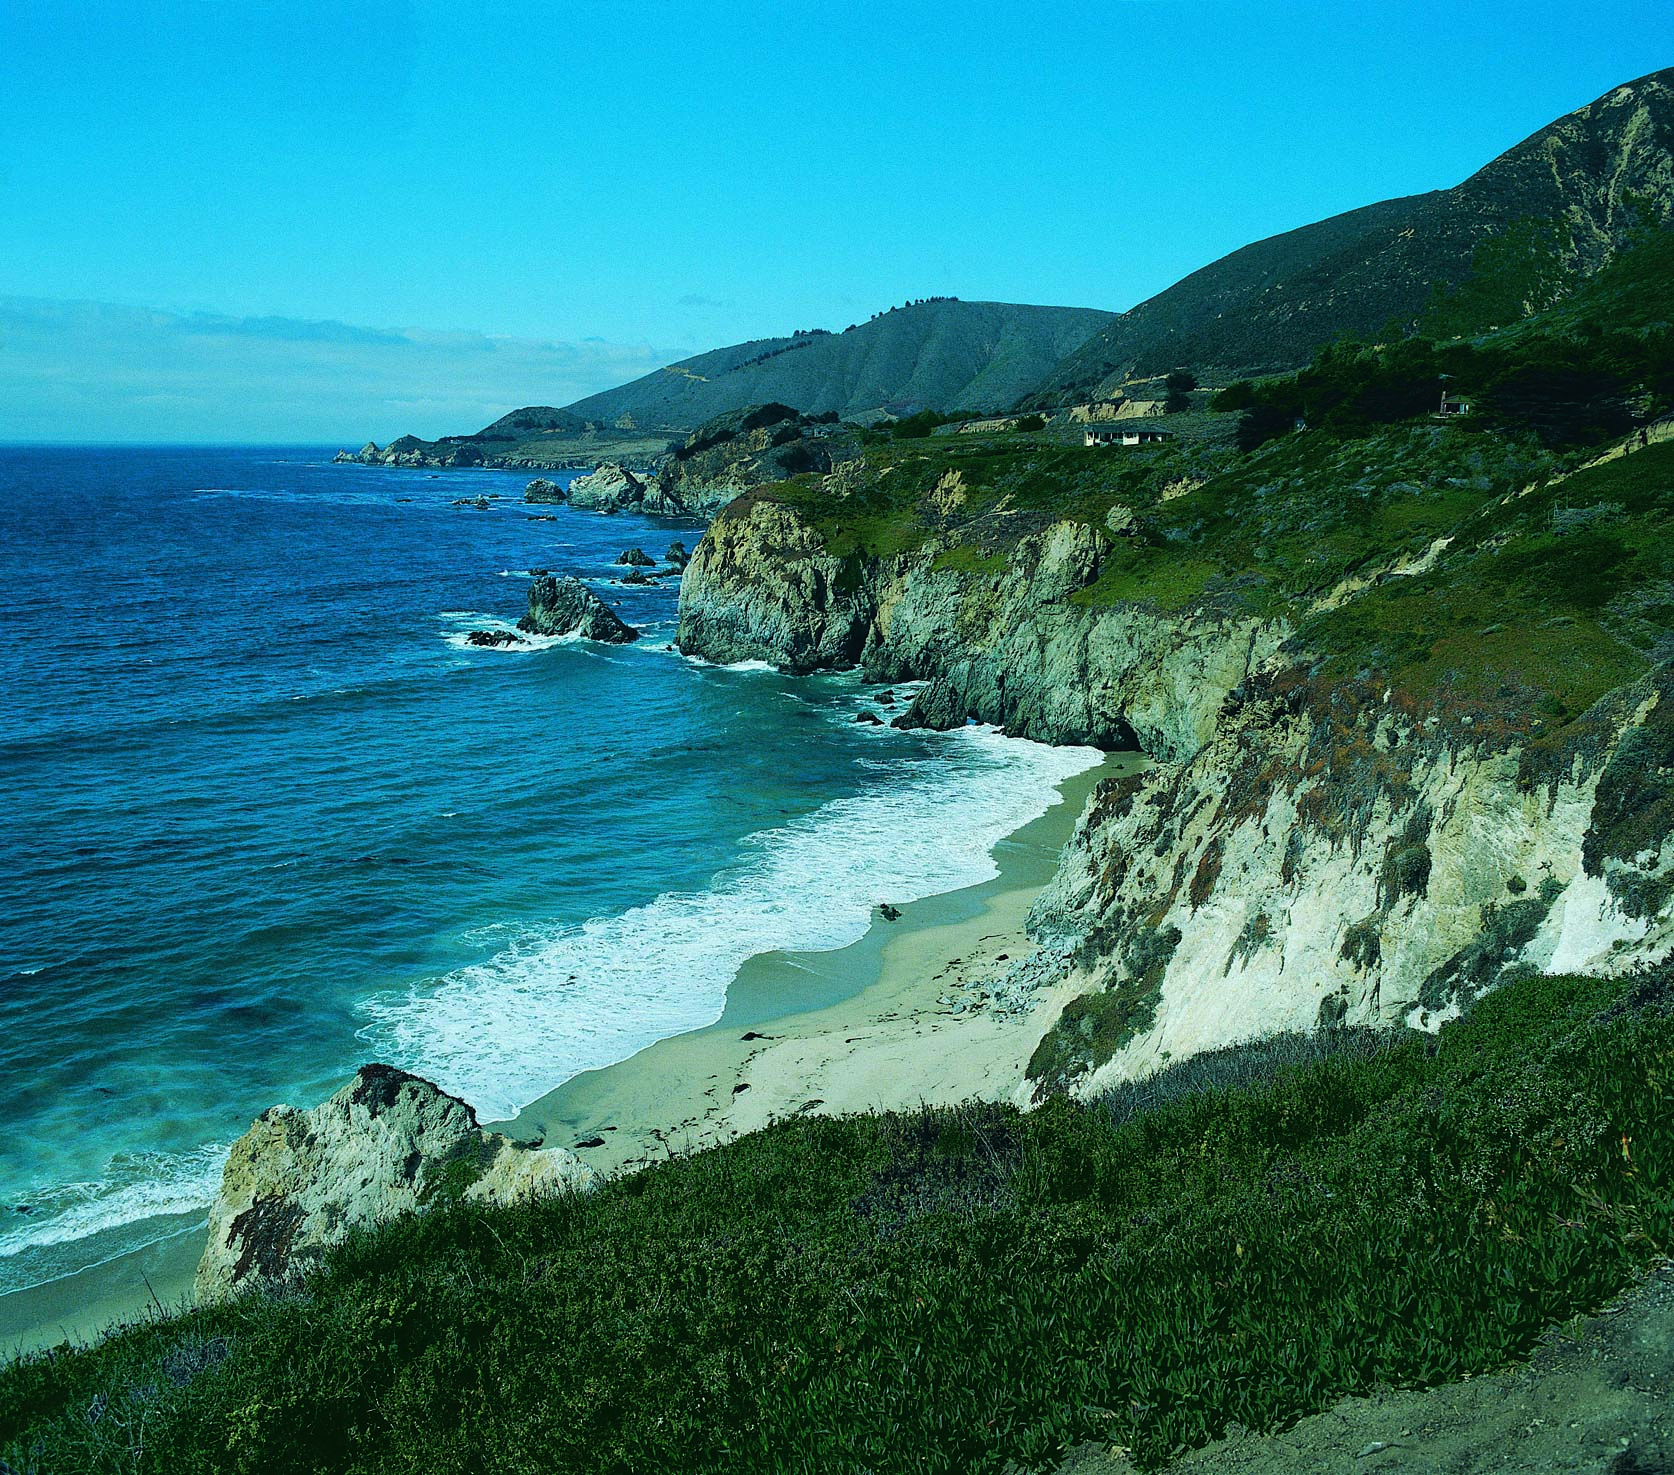 Top 10 Places To Travel As A Couple: The Top 10 Romantic Getaways In California